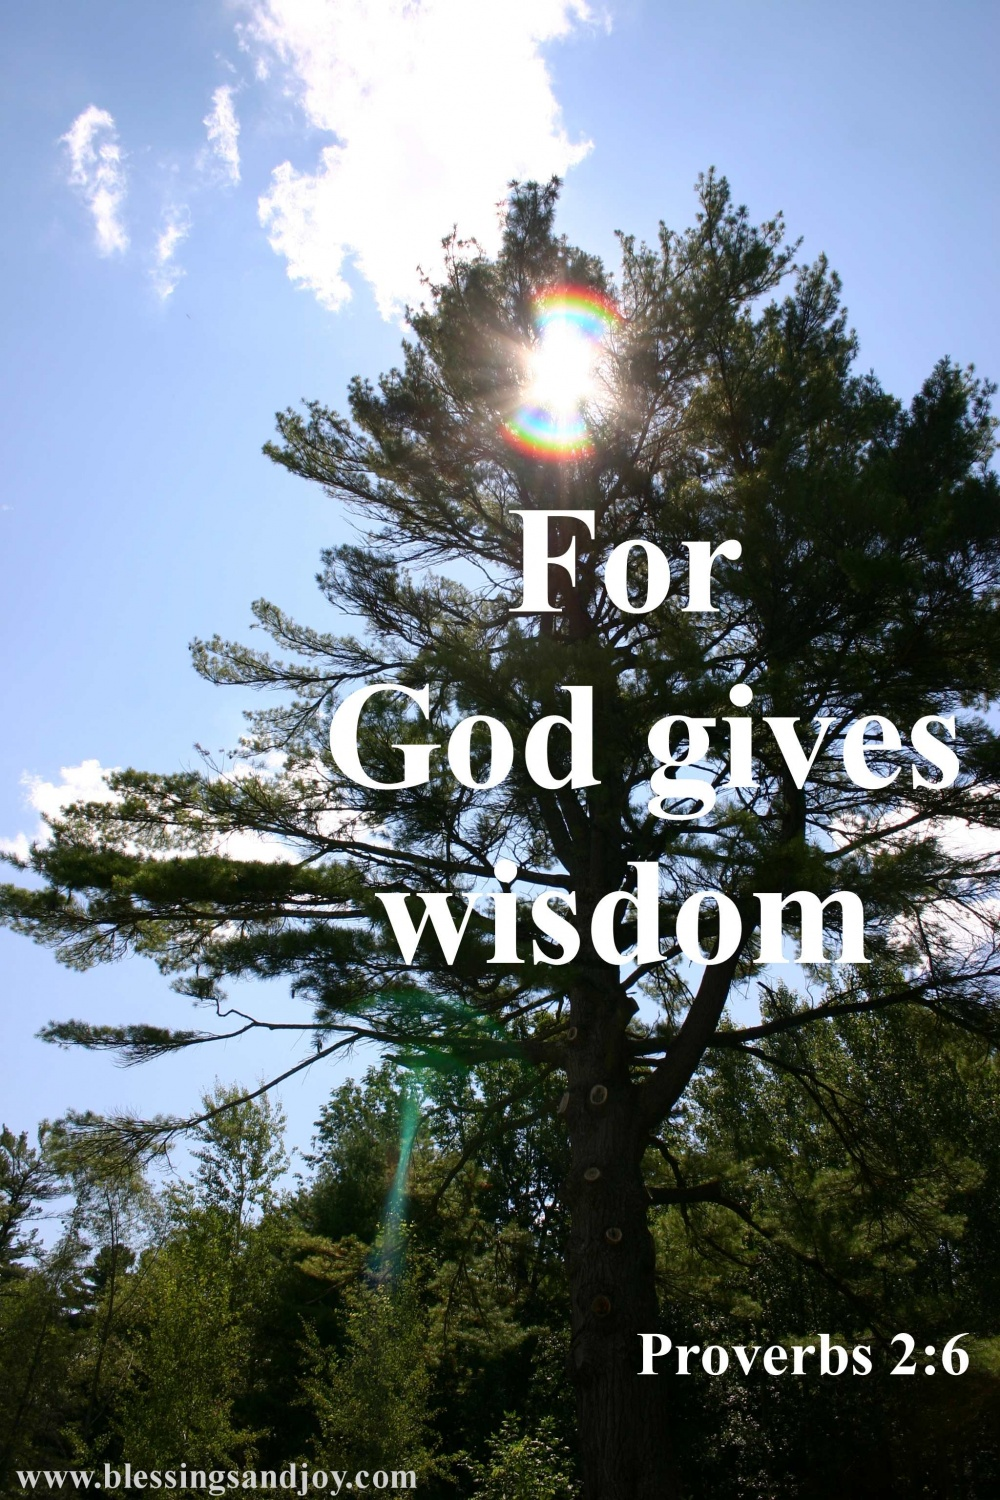 For_God_gives_wisdom-26